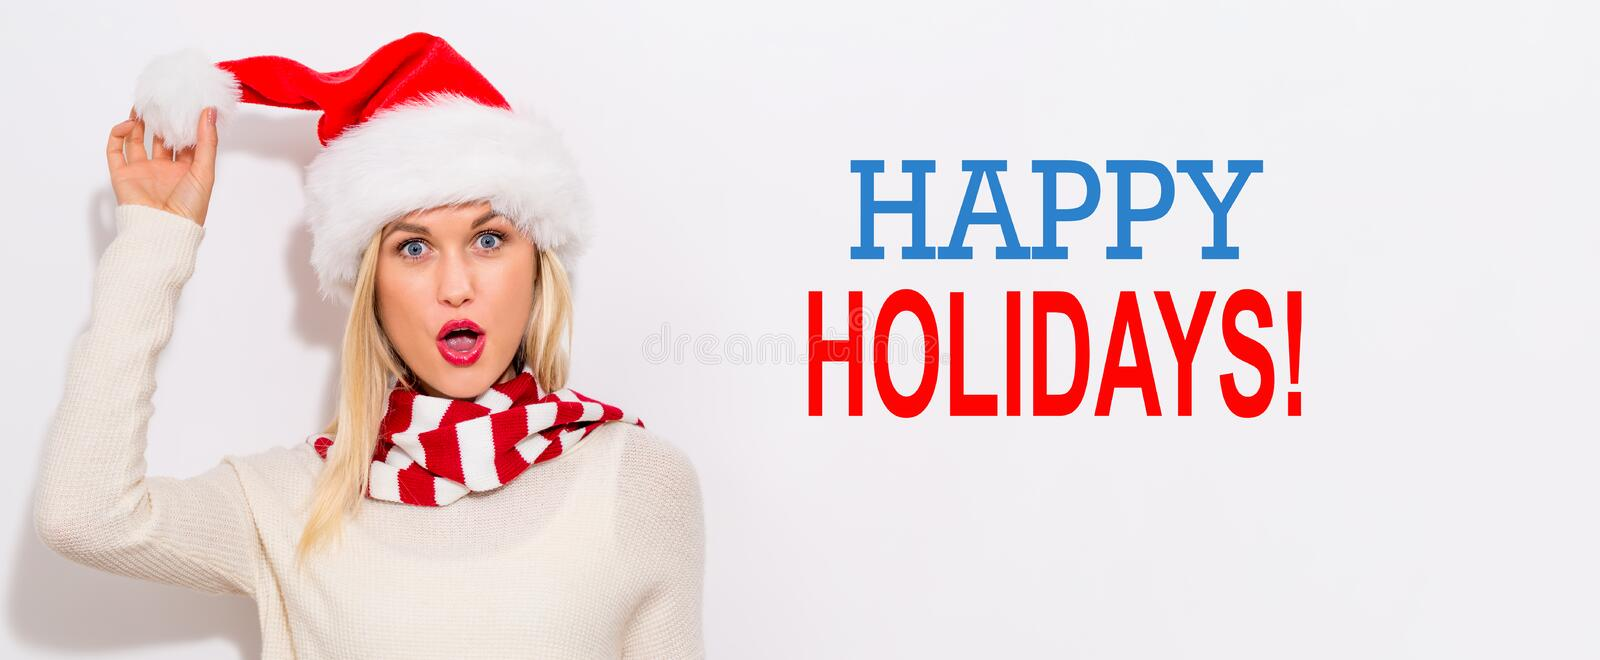 Happy holidays message with woman with Santa hat royalty free stock photo